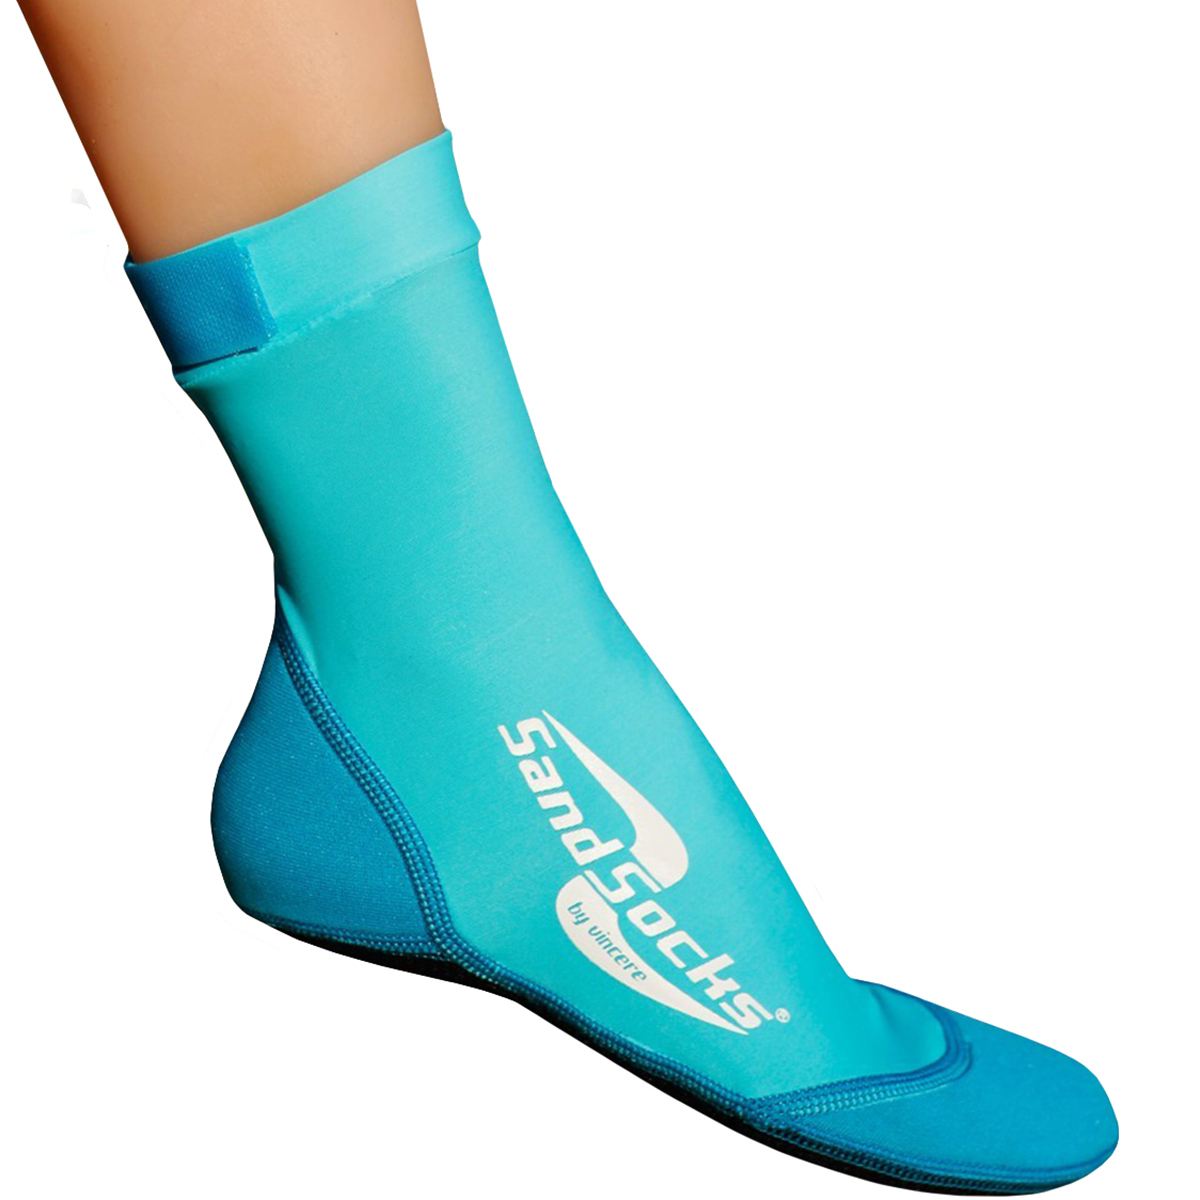 Sporting Goods Hearty Water Gear Fin Socks Bare Foot Protection Medium Large Soft Neoprene No Blisters Water Sports